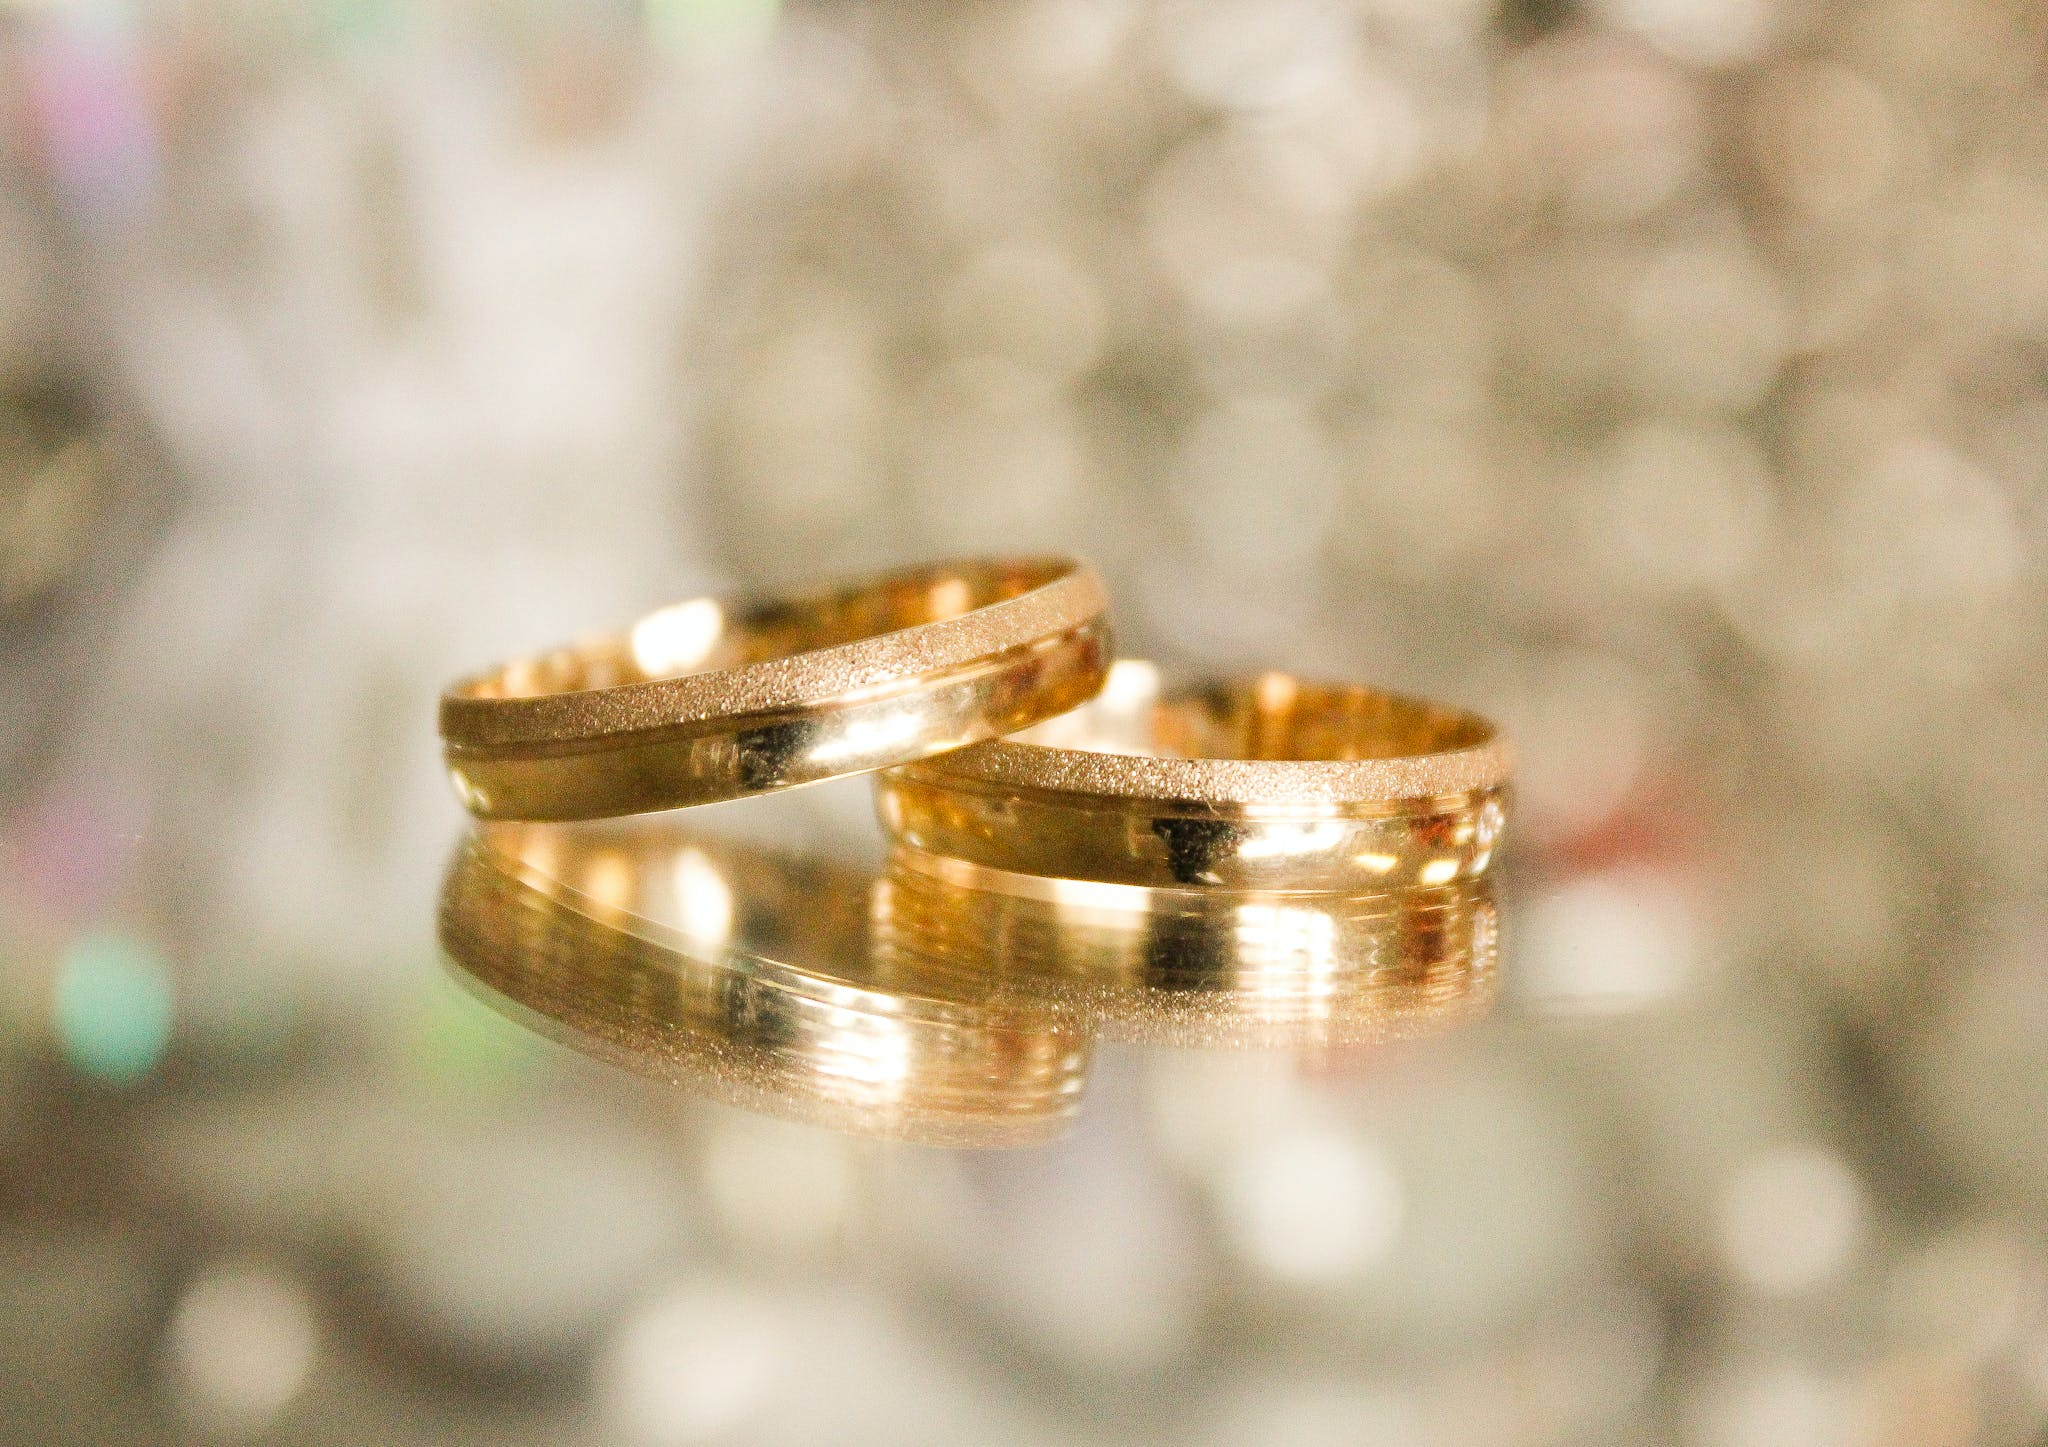 blur, close-up, gold